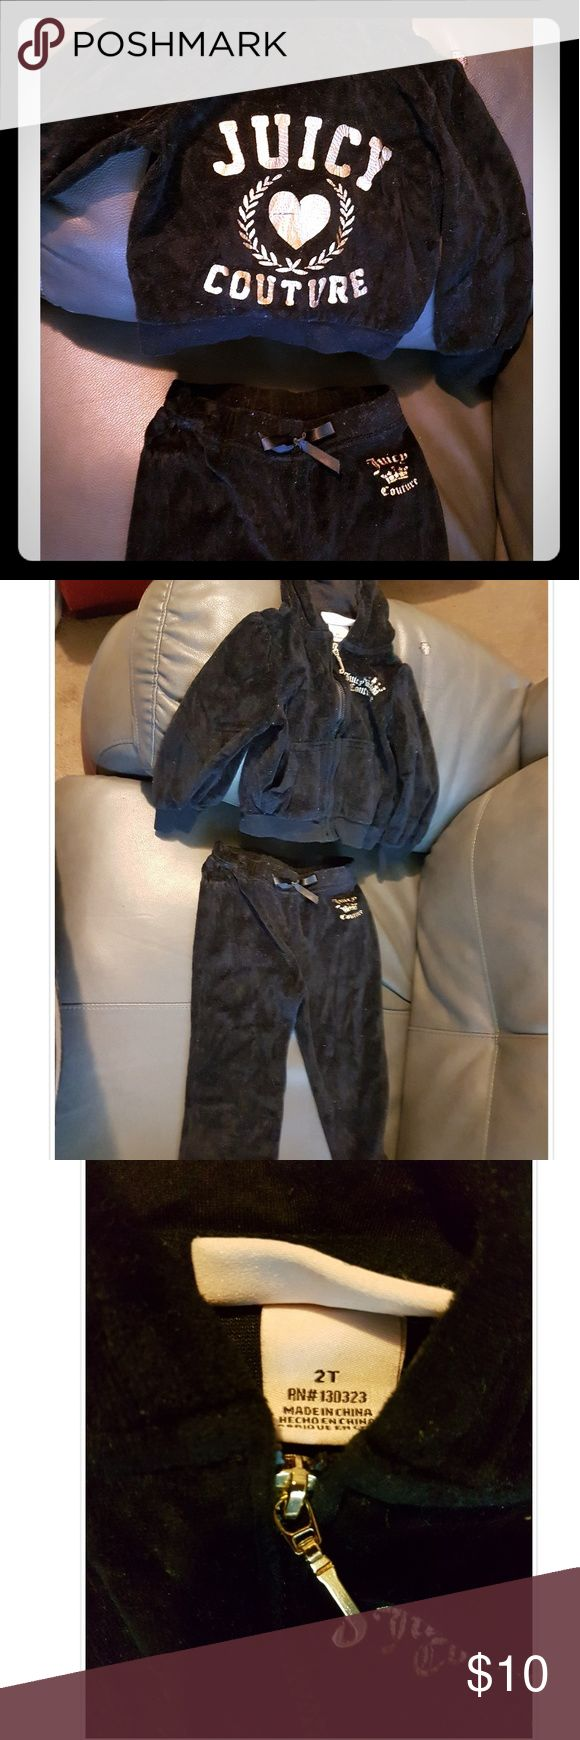 Toddler girls 2T Juicy Couture velour jogging suit Girls toddler 2T Juicy Couture velour jogging suit in good used condition Juicy Couture Matching Sets